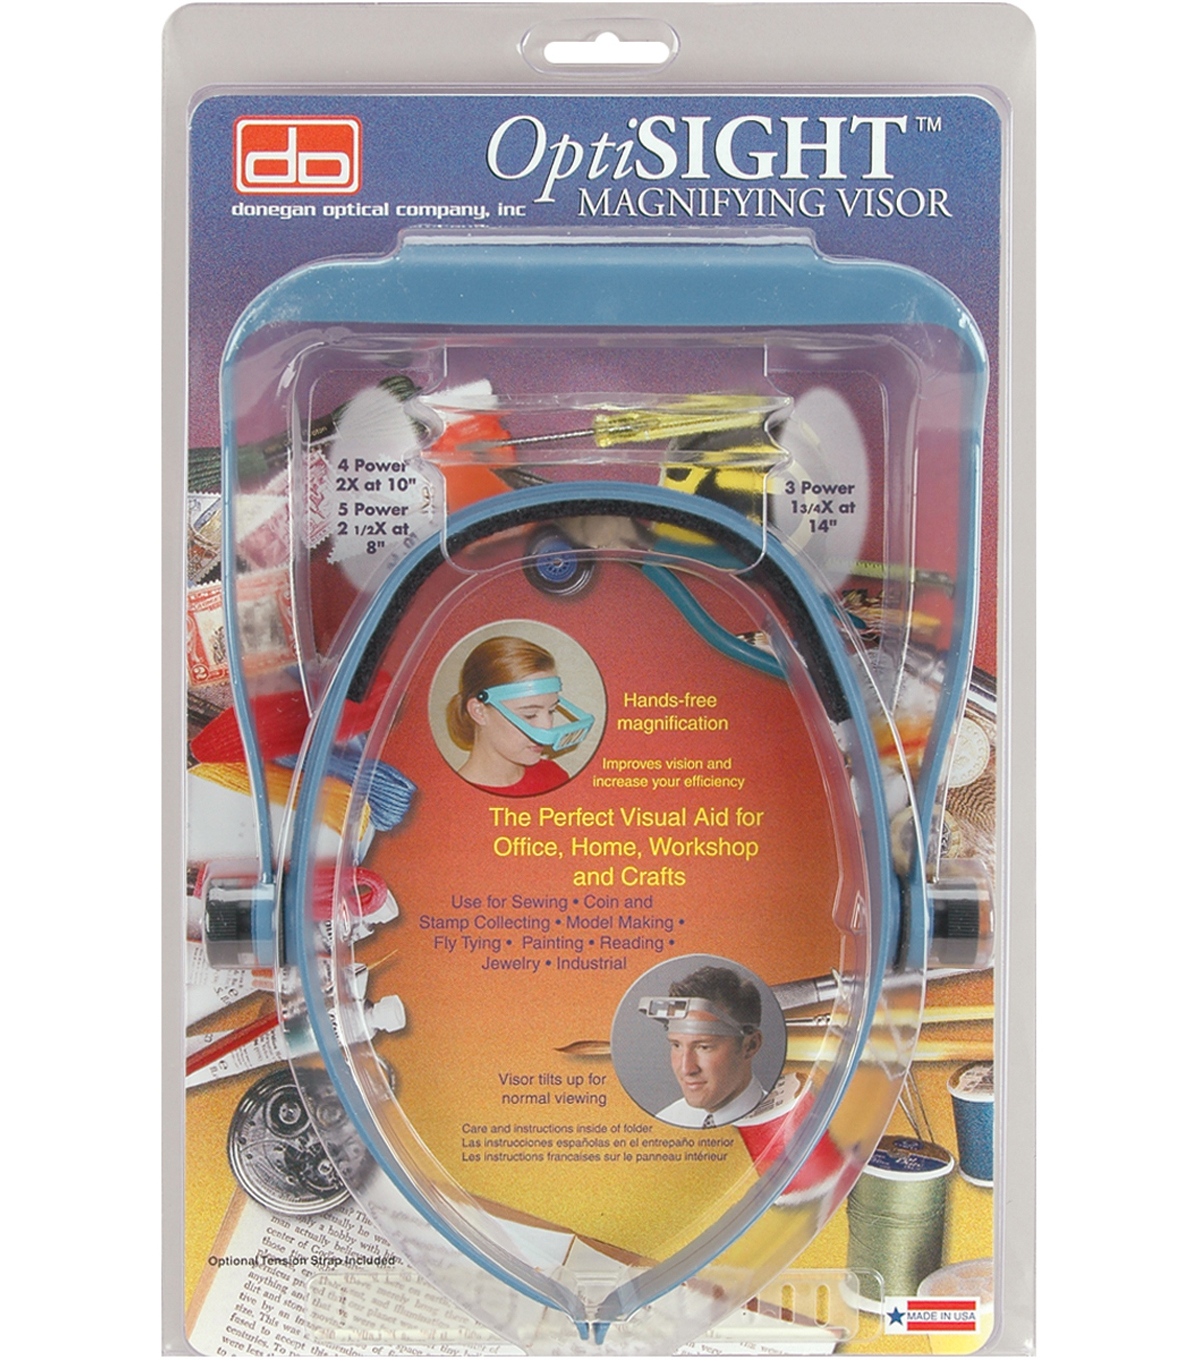 Donegan OptiSIGHT Magnifying Visor-Blue